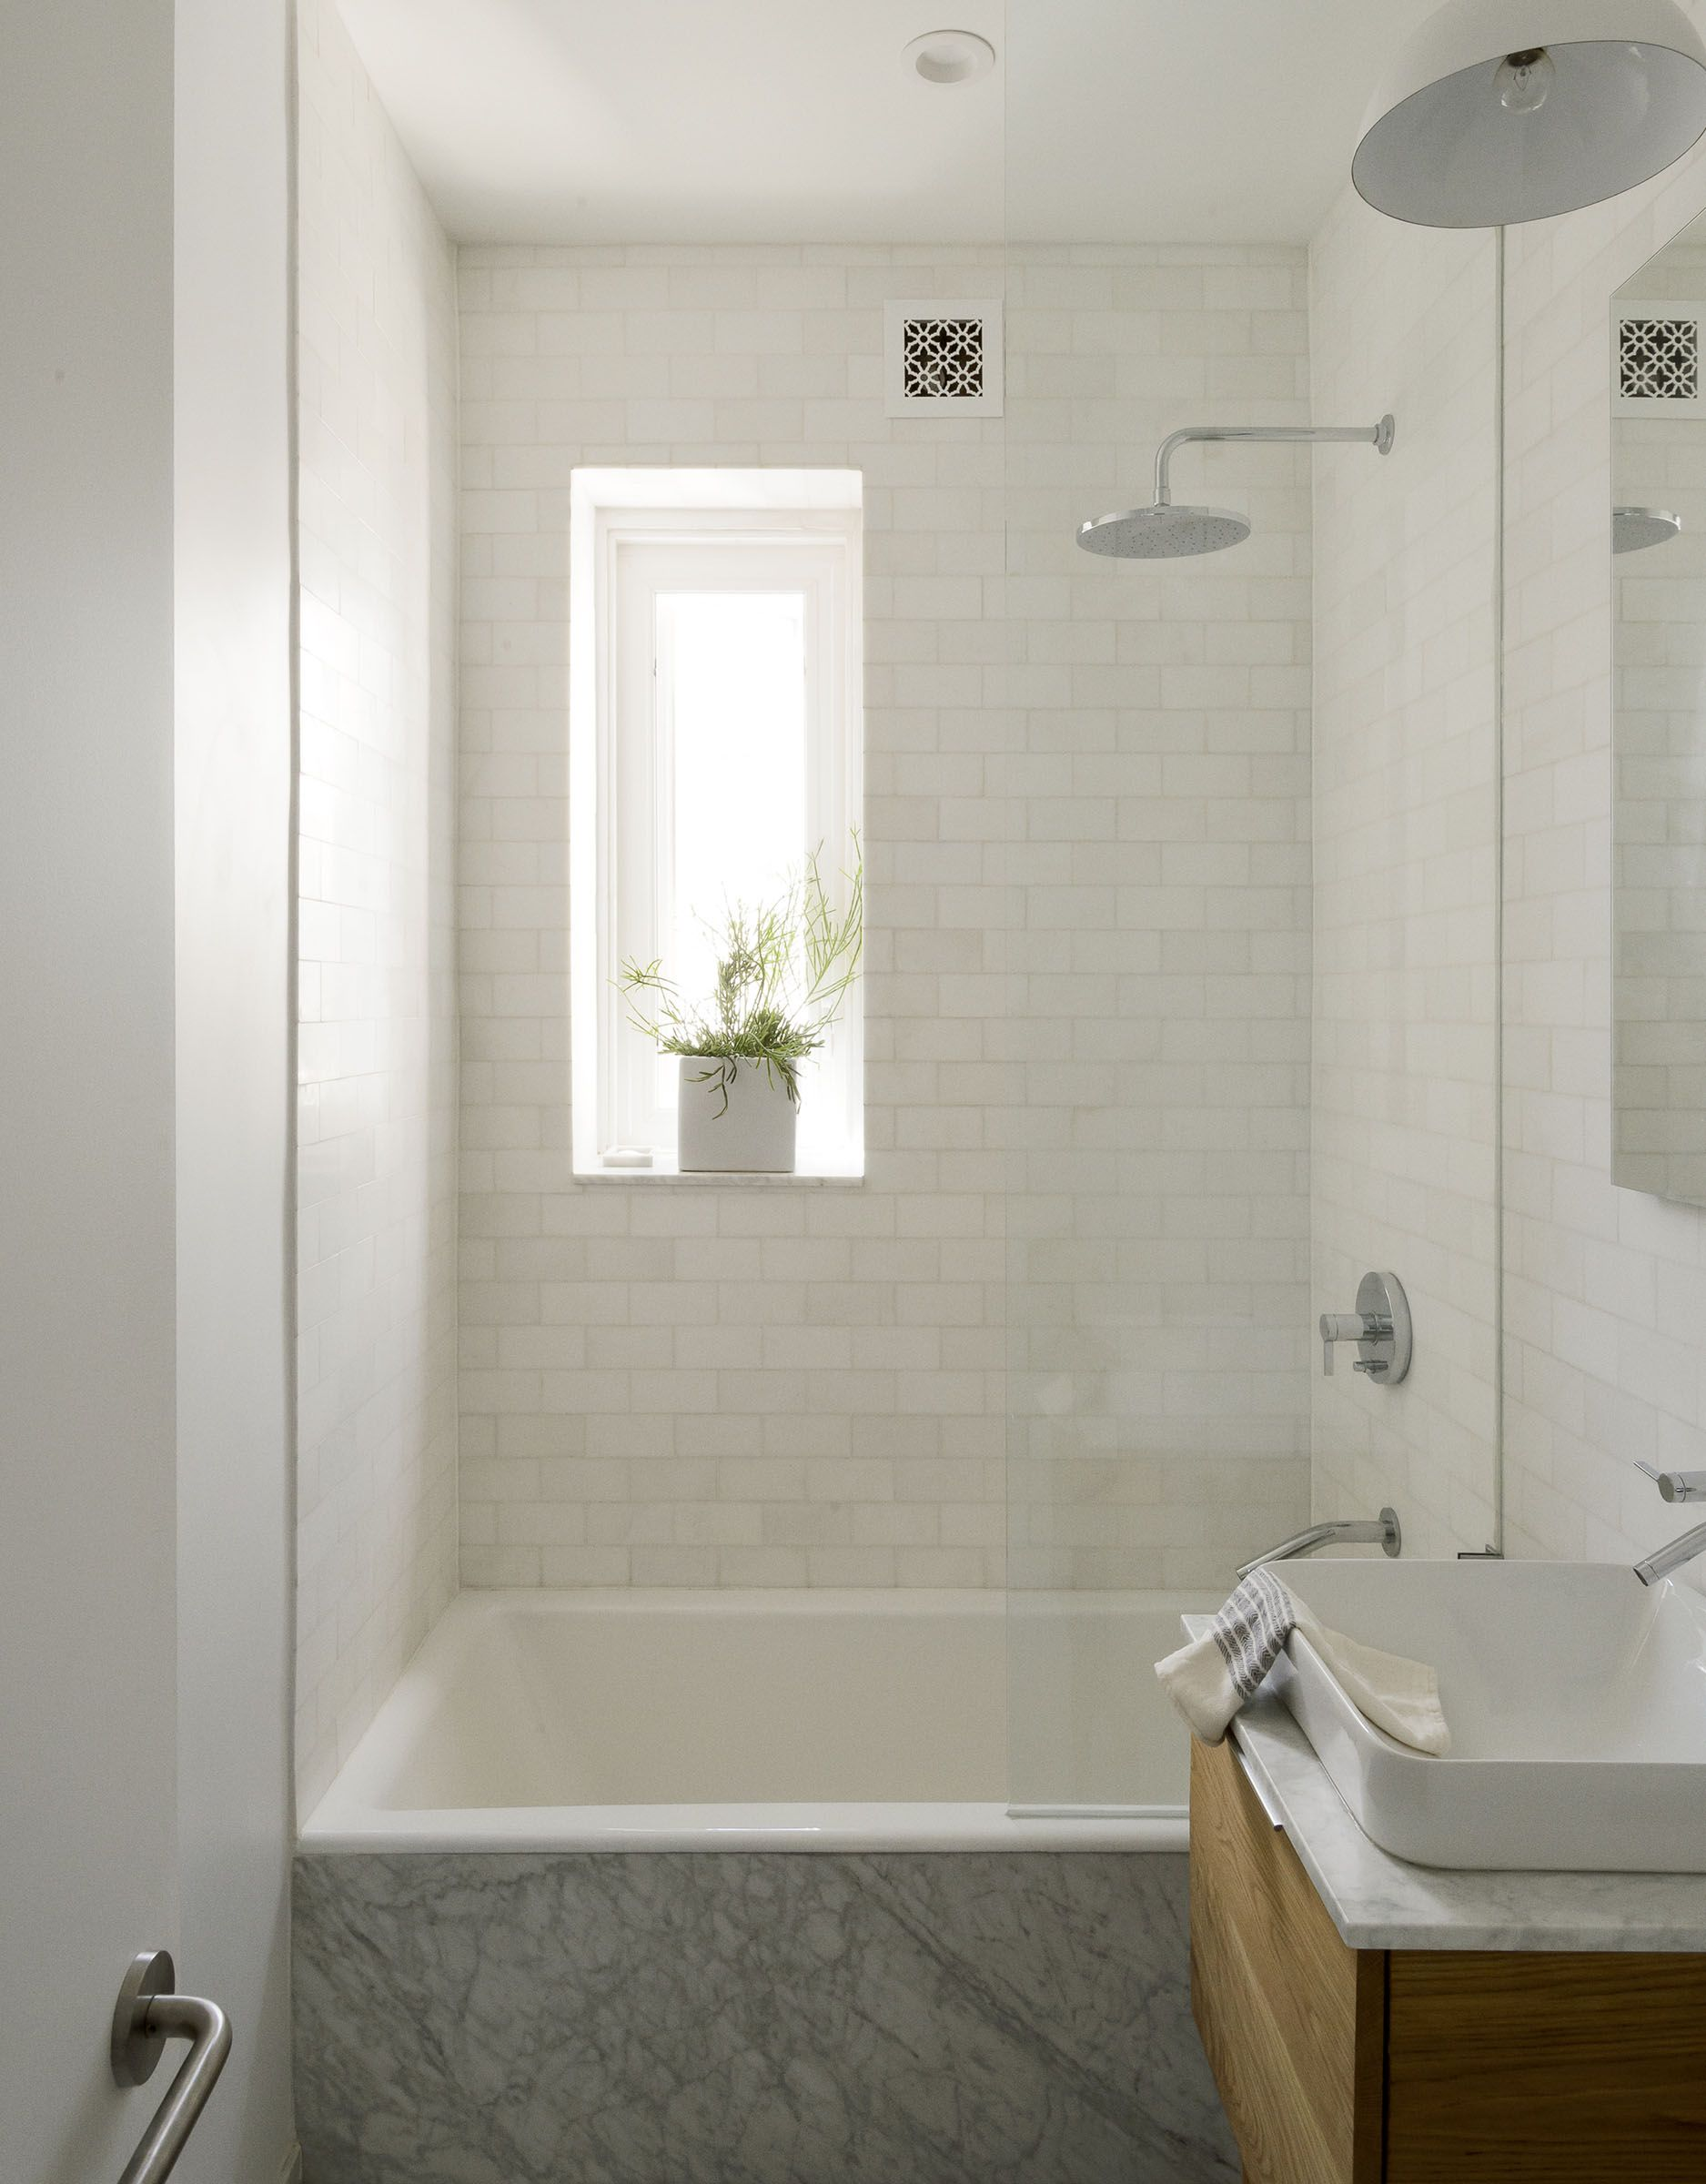 Compact Marble Tiled Bath In Jacqueline Schmidt And David Friedlander S 675 Square Foot Brooklyn Quarters Matthew Williams Photo Remodelista